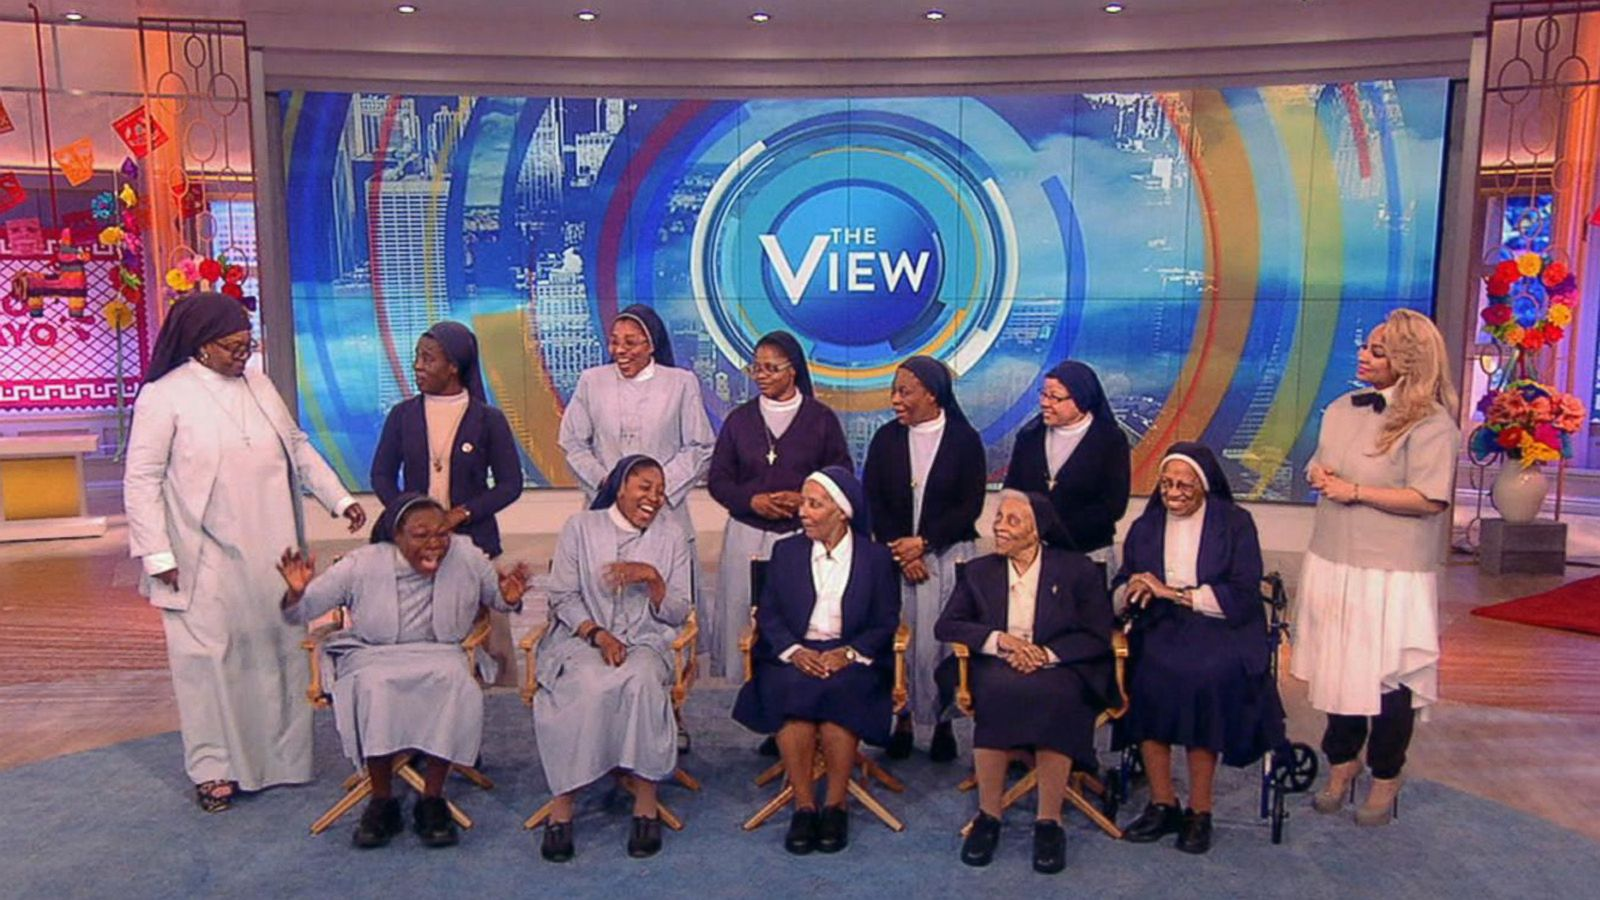 VIDEO: 'The View' Special Part 6: The Co-Hosts Name Their Favorite Moments